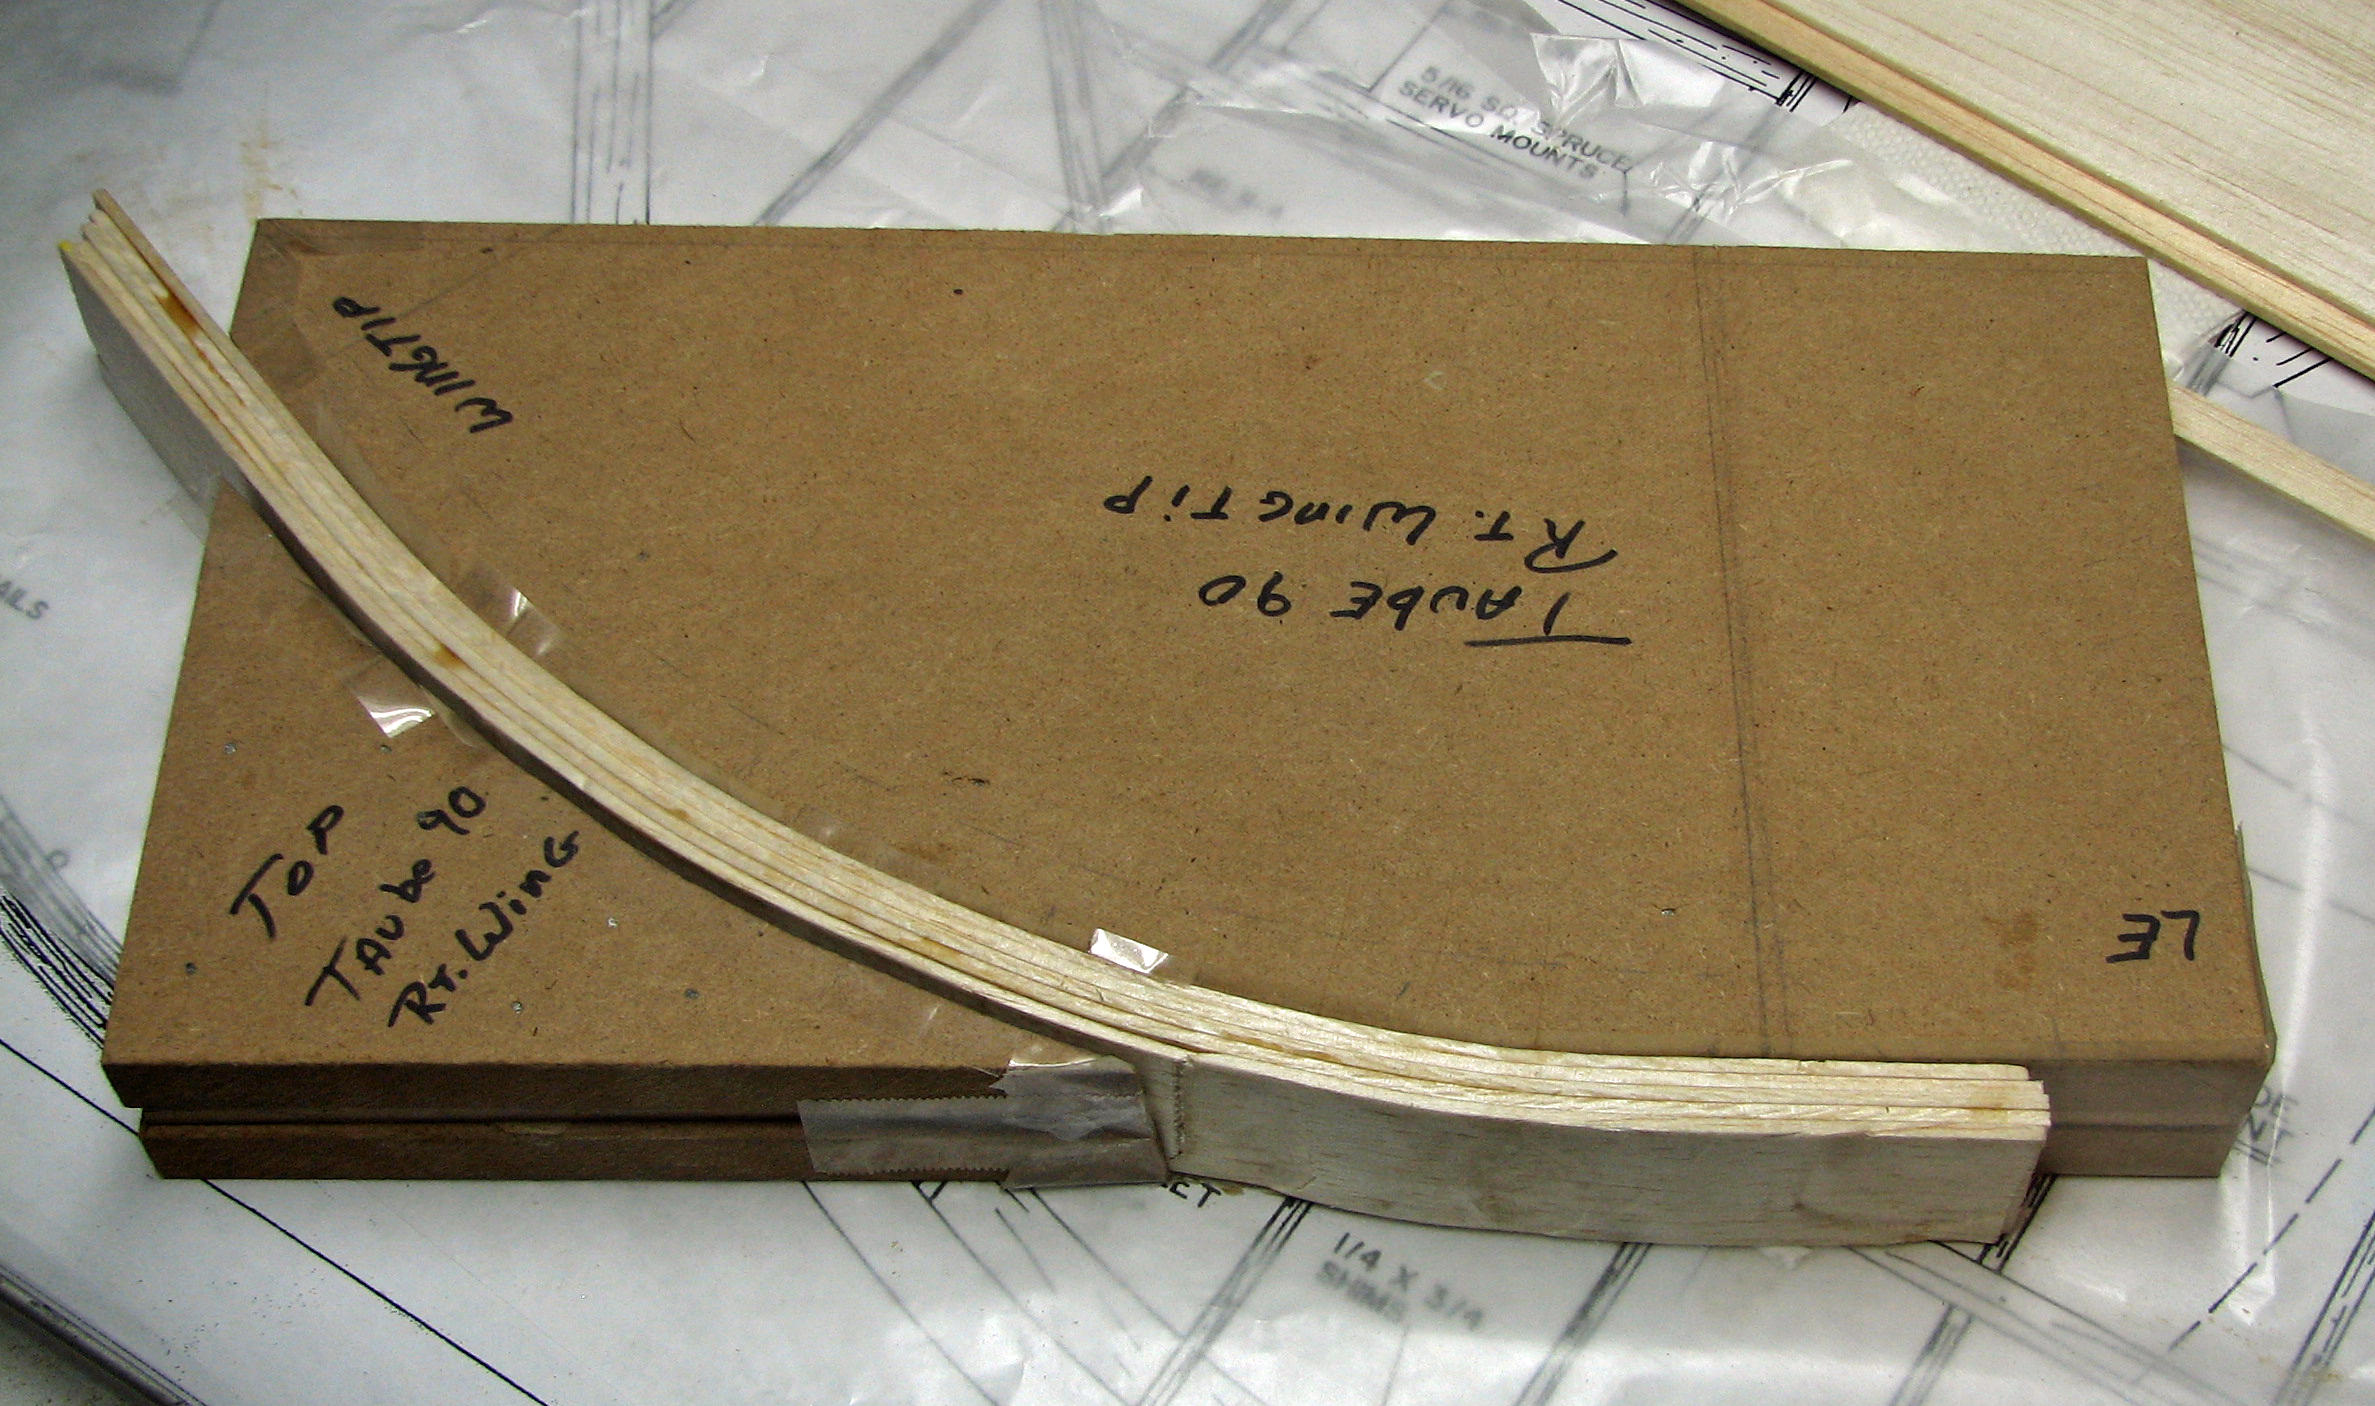 Click image for larger version  Name:Wingtip unclamped.jpg Views:714 Size:2.12 MB ID:2196112